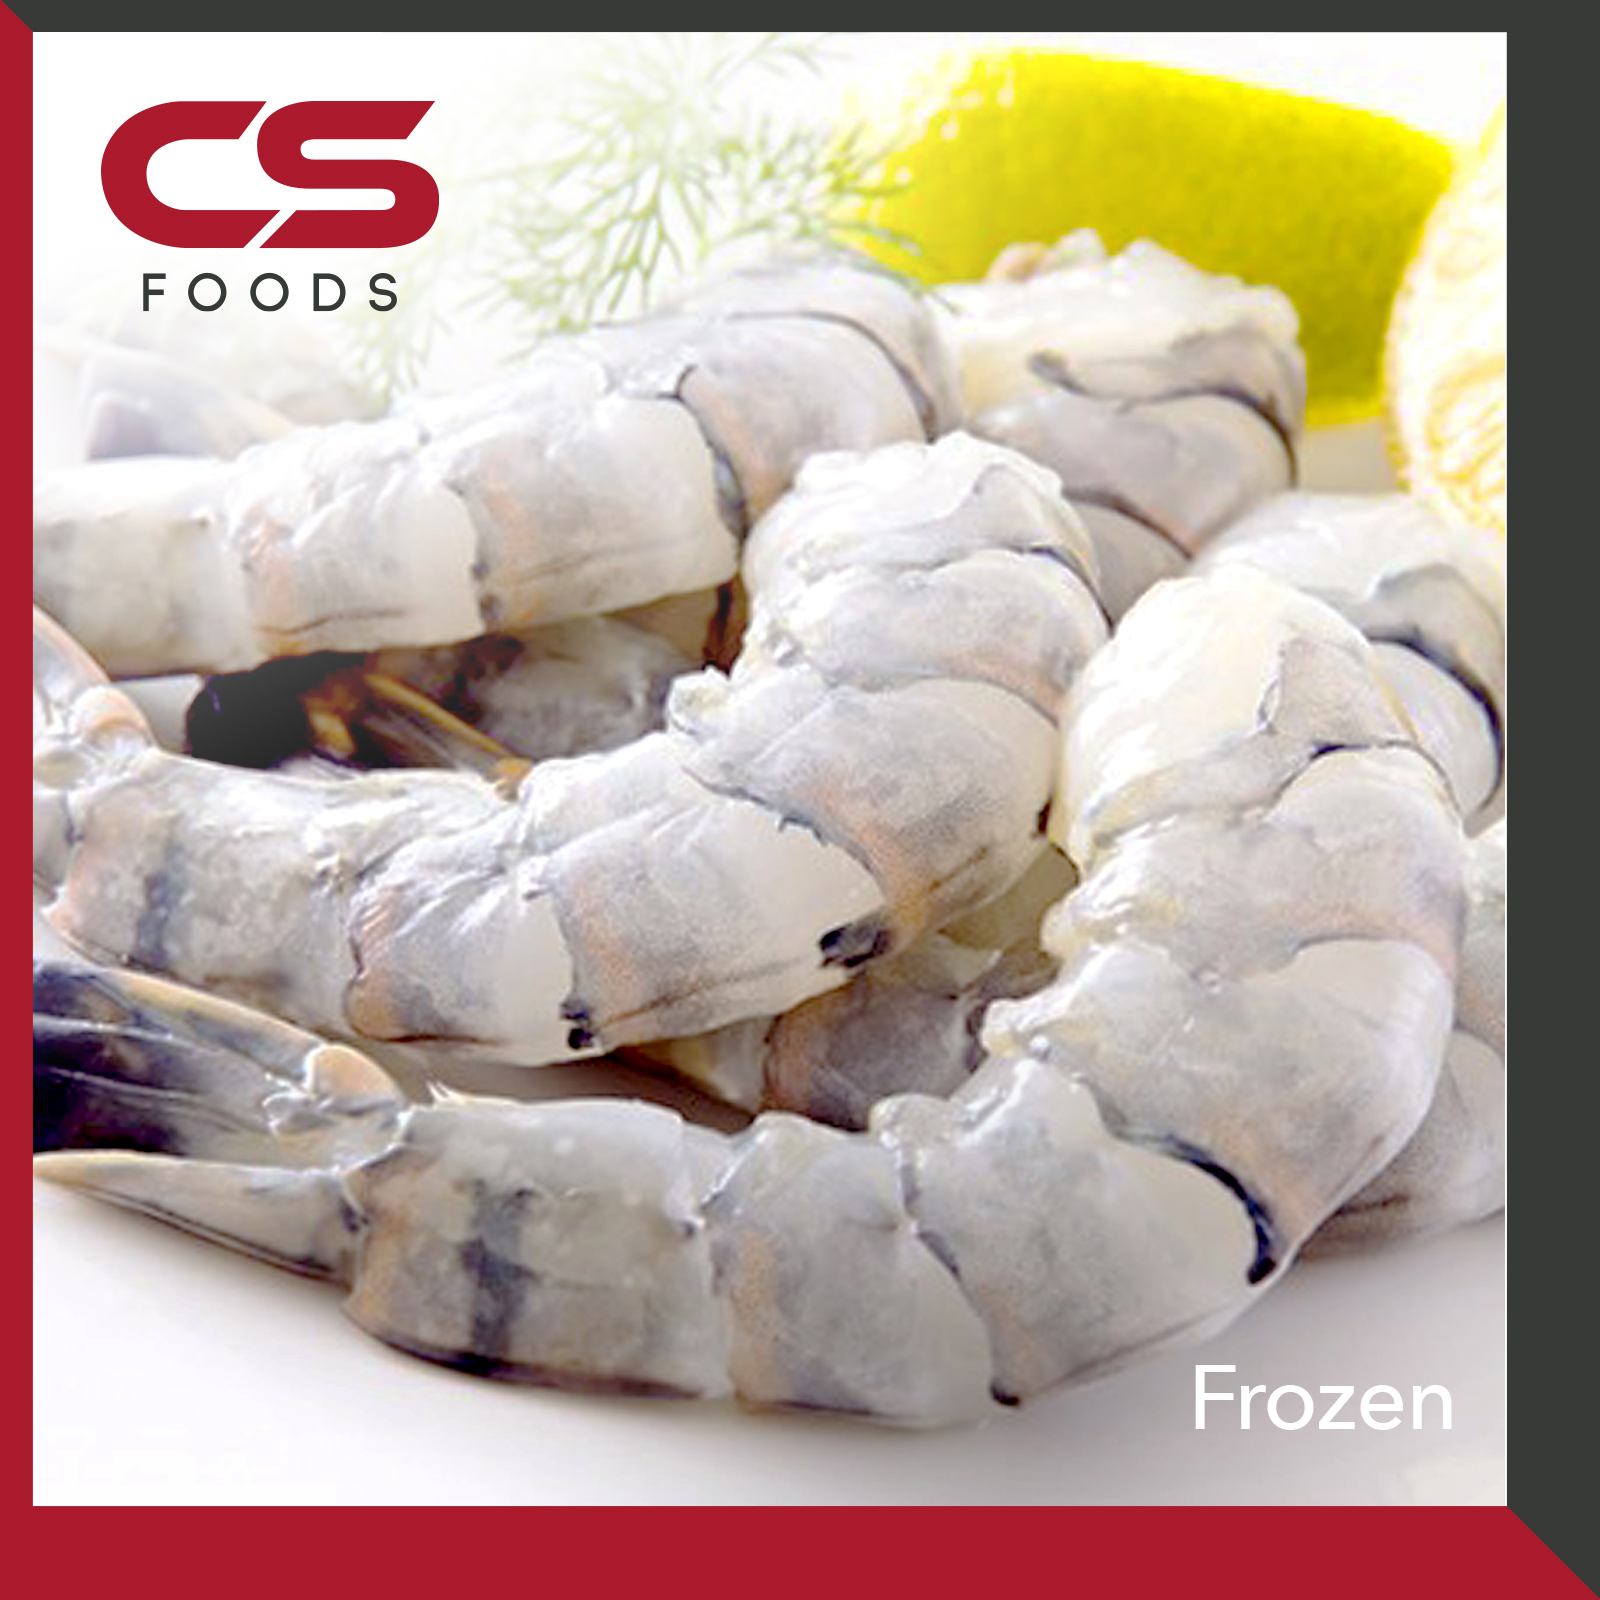 41)CS_Prawn-(Peeled-with-Tail-On)